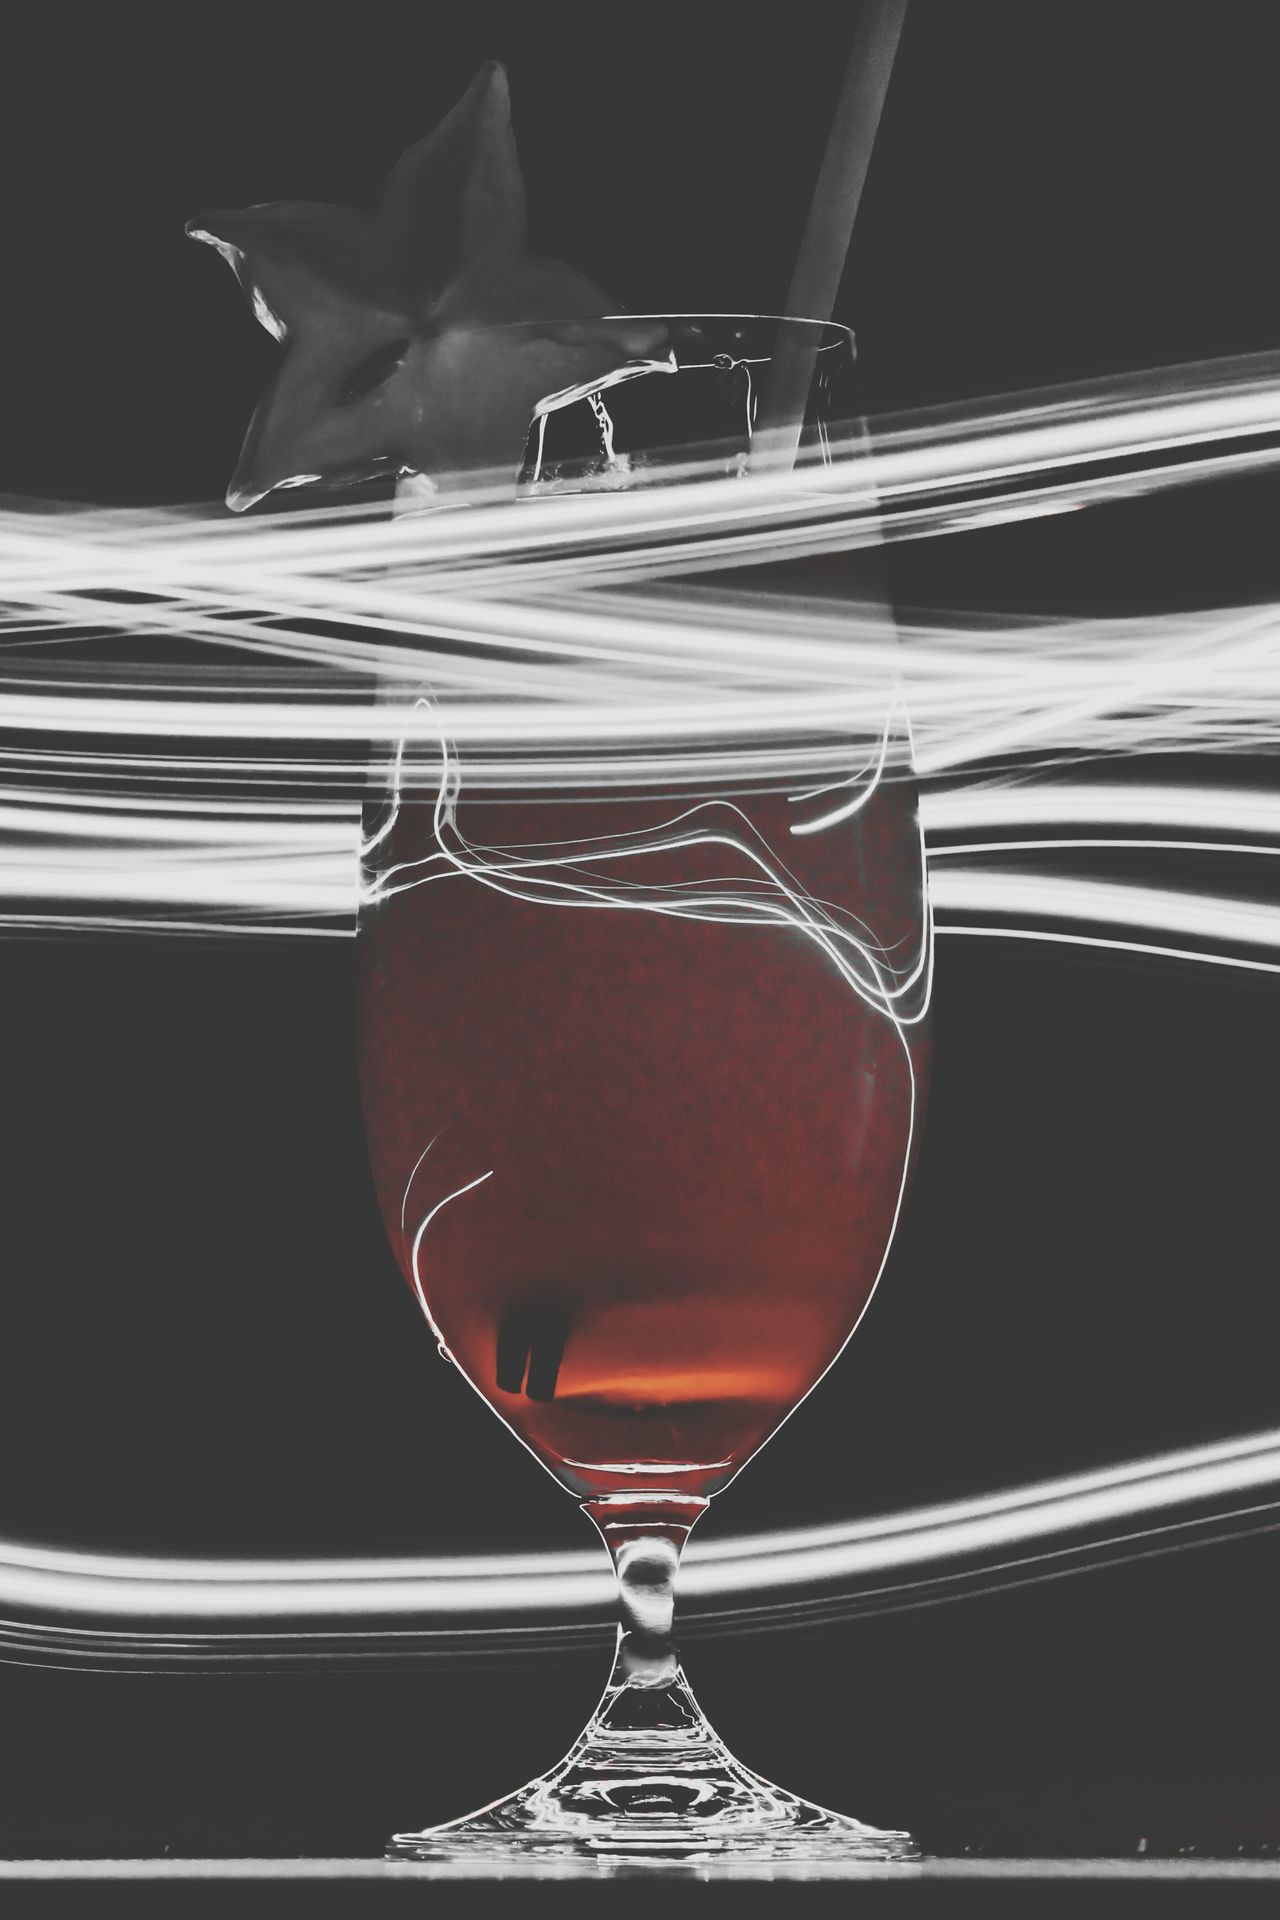 Edited Re Edited Re Edit/re Post Drinks Coctails Wallpaper Creative Light And Shadow Red Check This Out Taking Photos Glass Reflections Starfruit Liquid Lunch